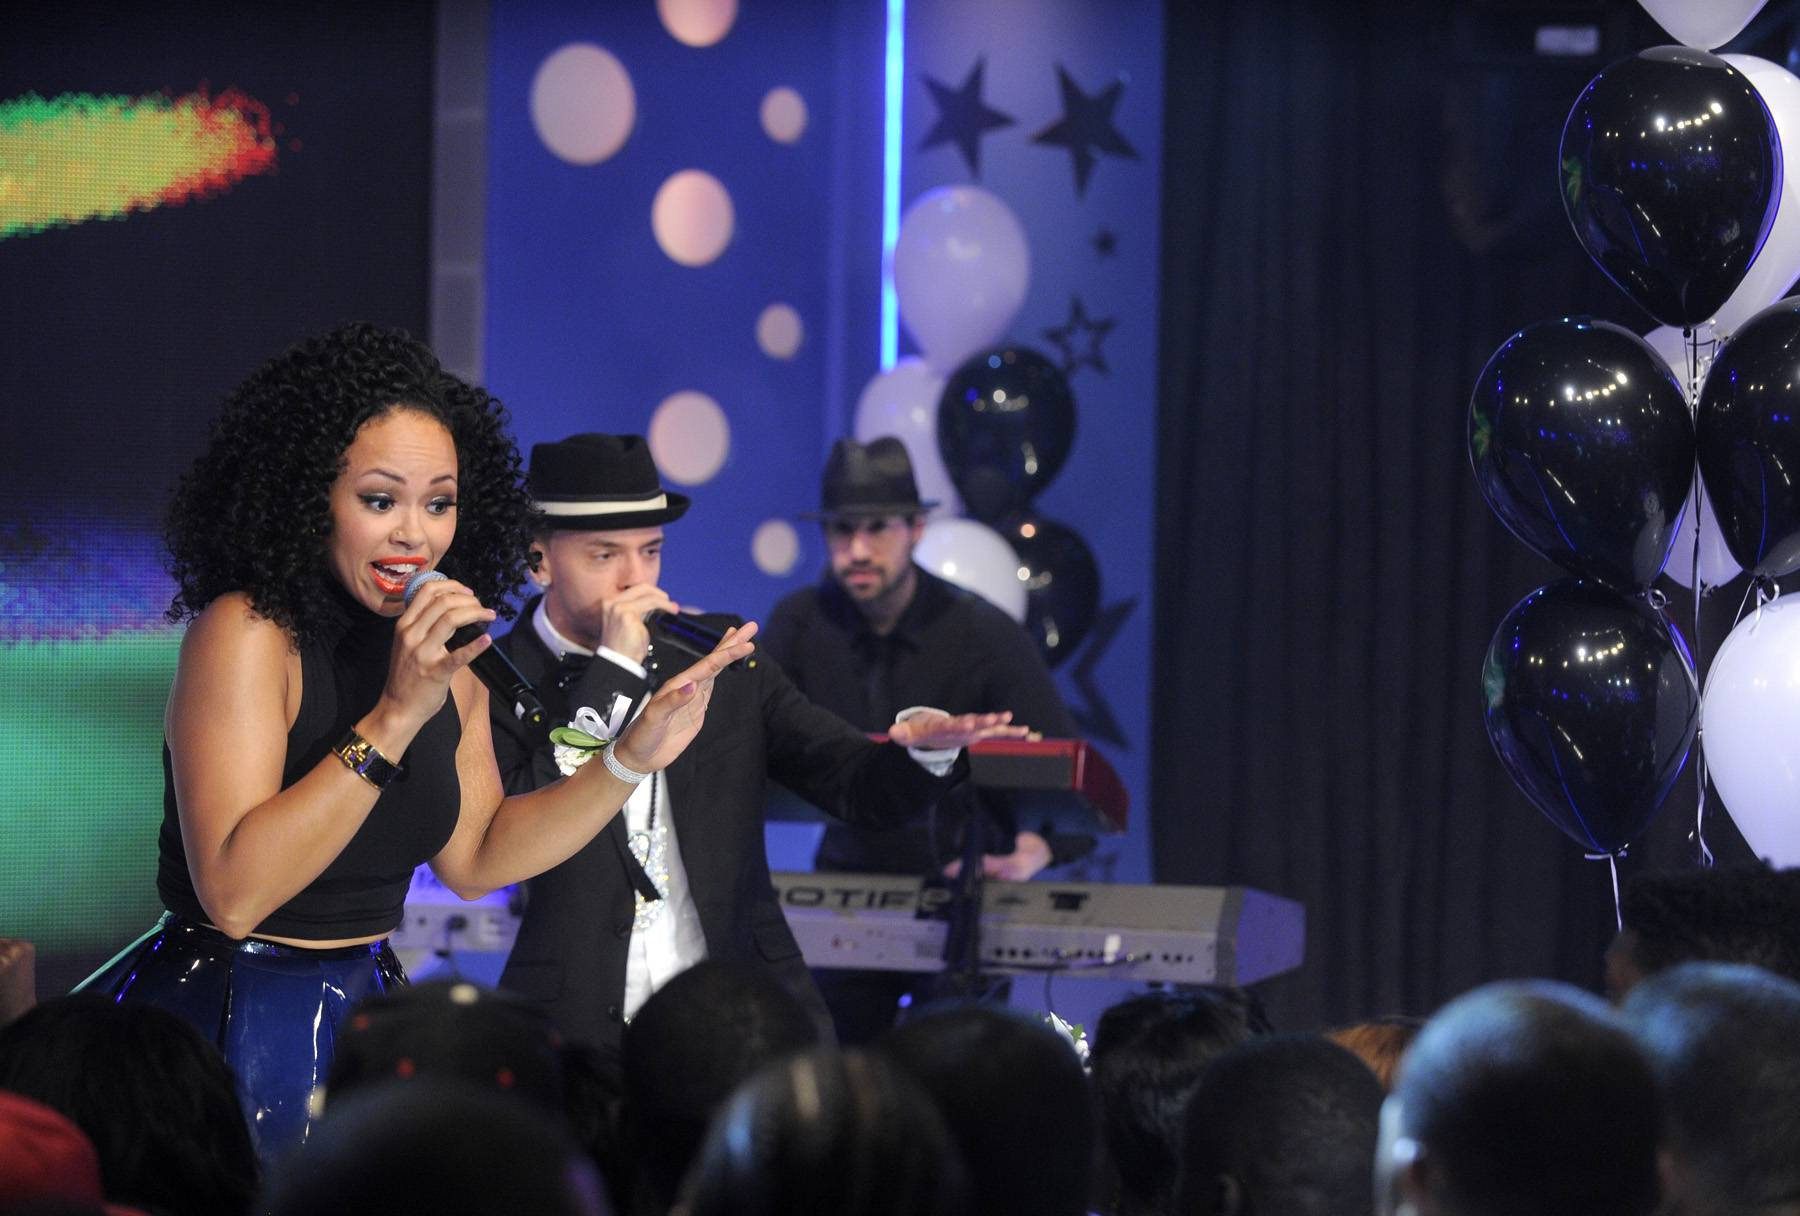 Smooth It Out Now - Elle Varner performs at 106 & Park, May 25, 2012. (Photo: John Ricard / BET)